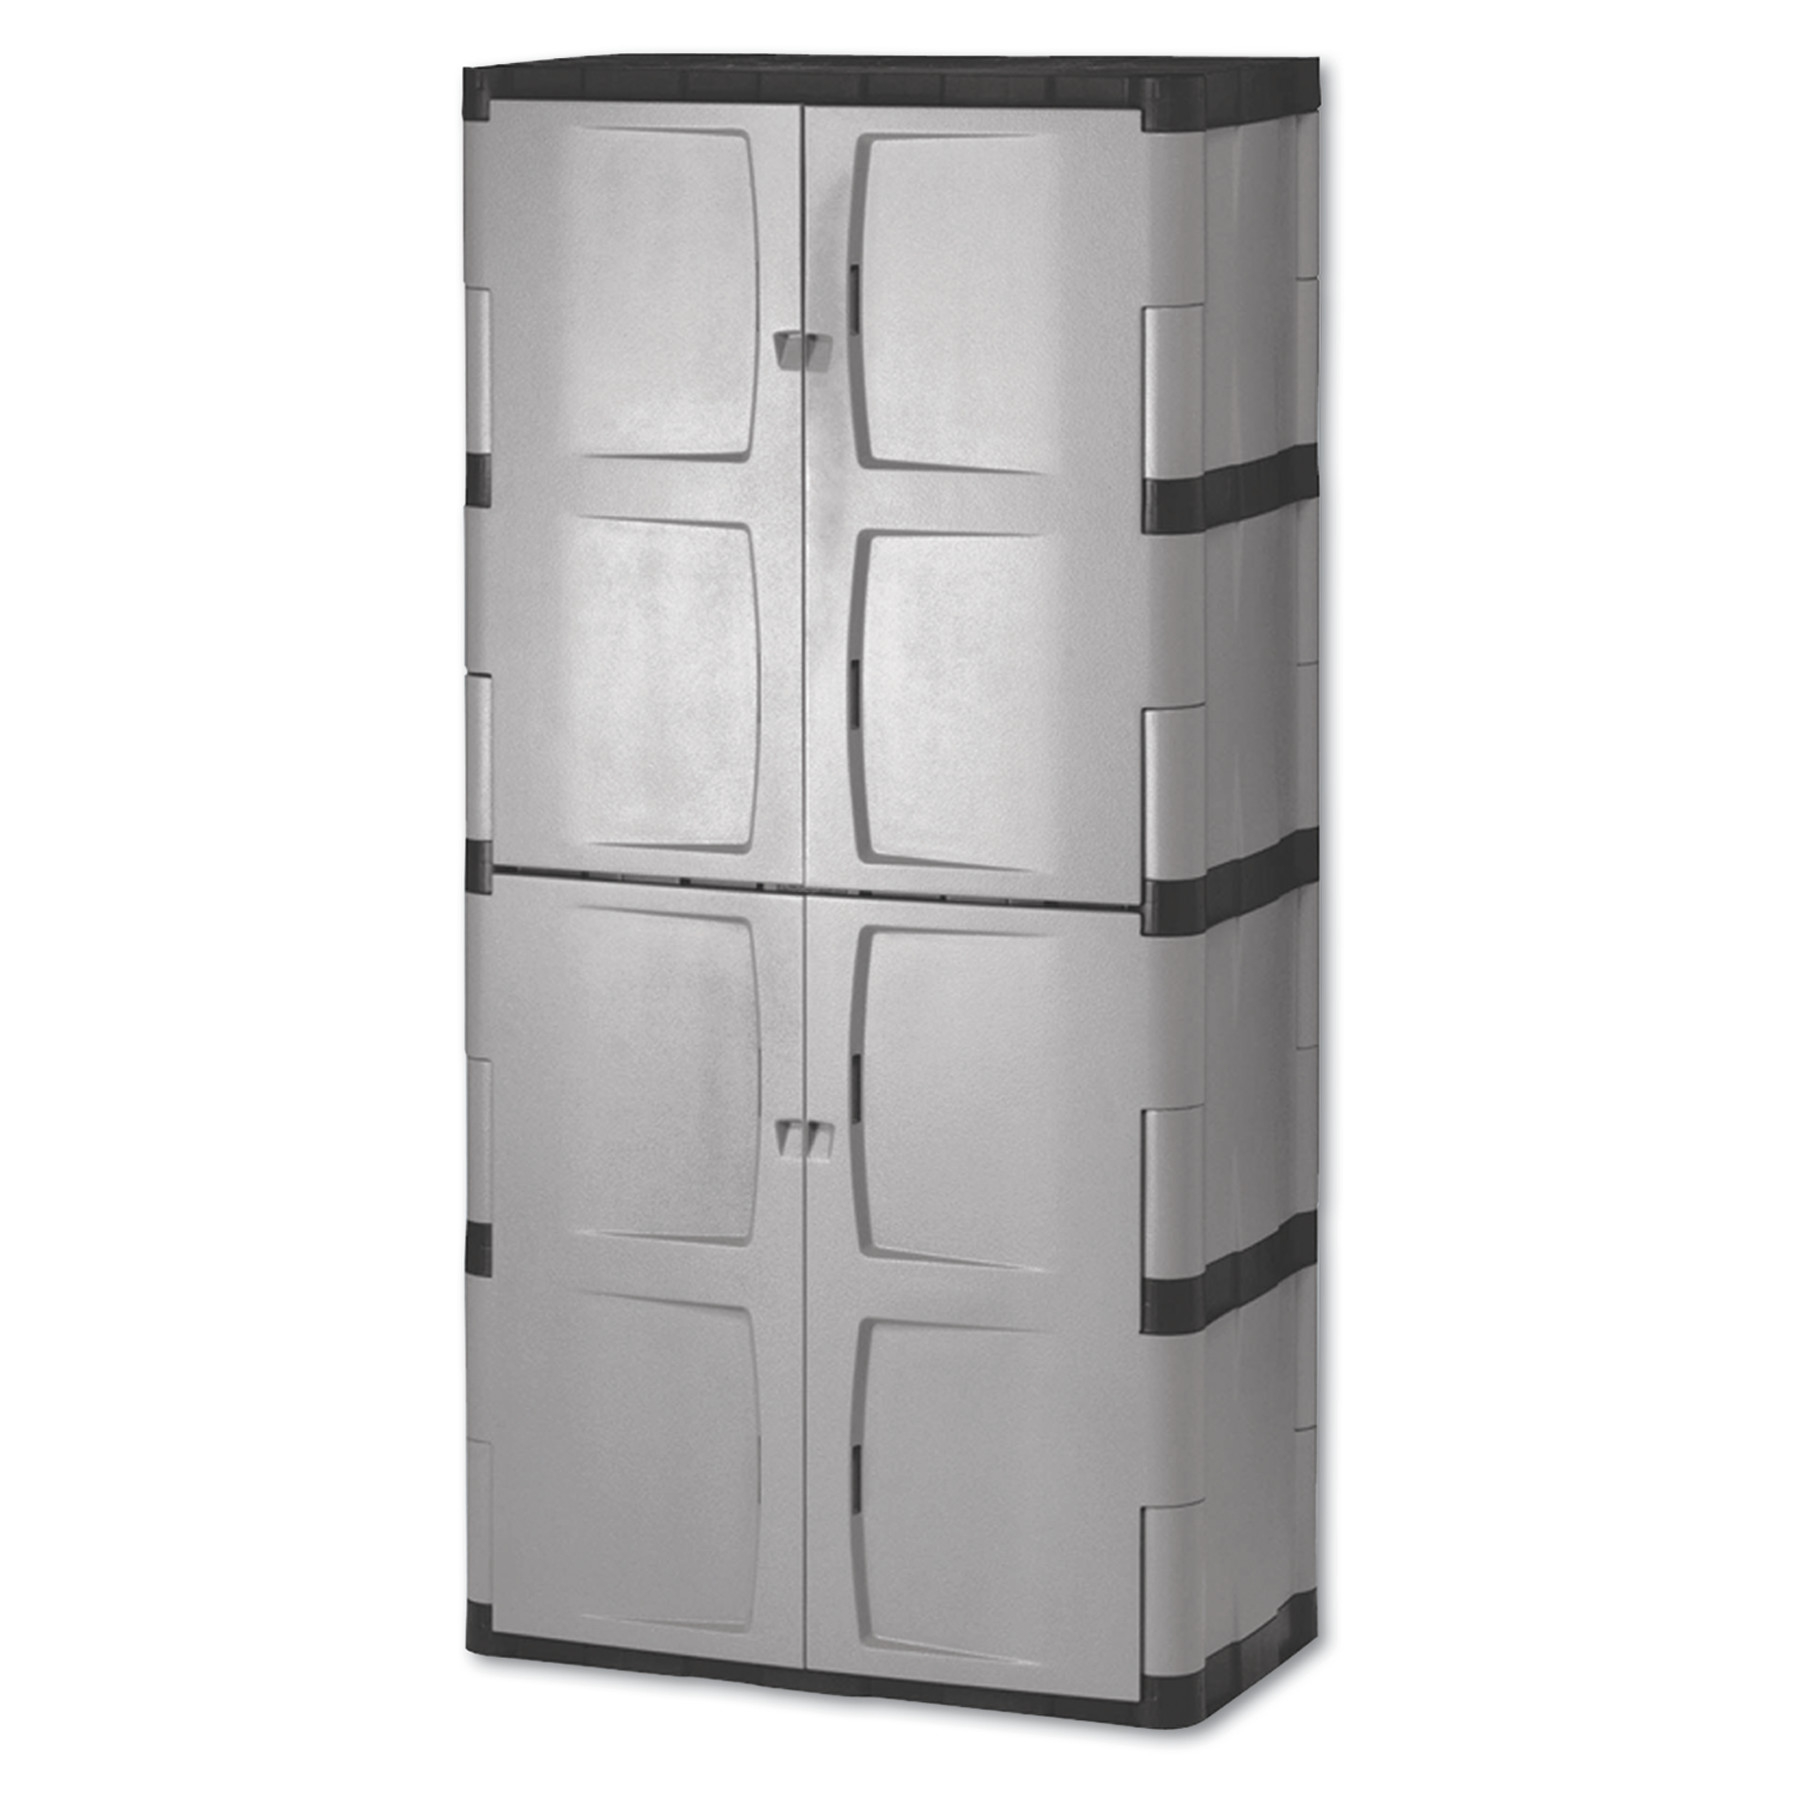 Storage Cabinets With Doors And Lockslocking storage cabinets